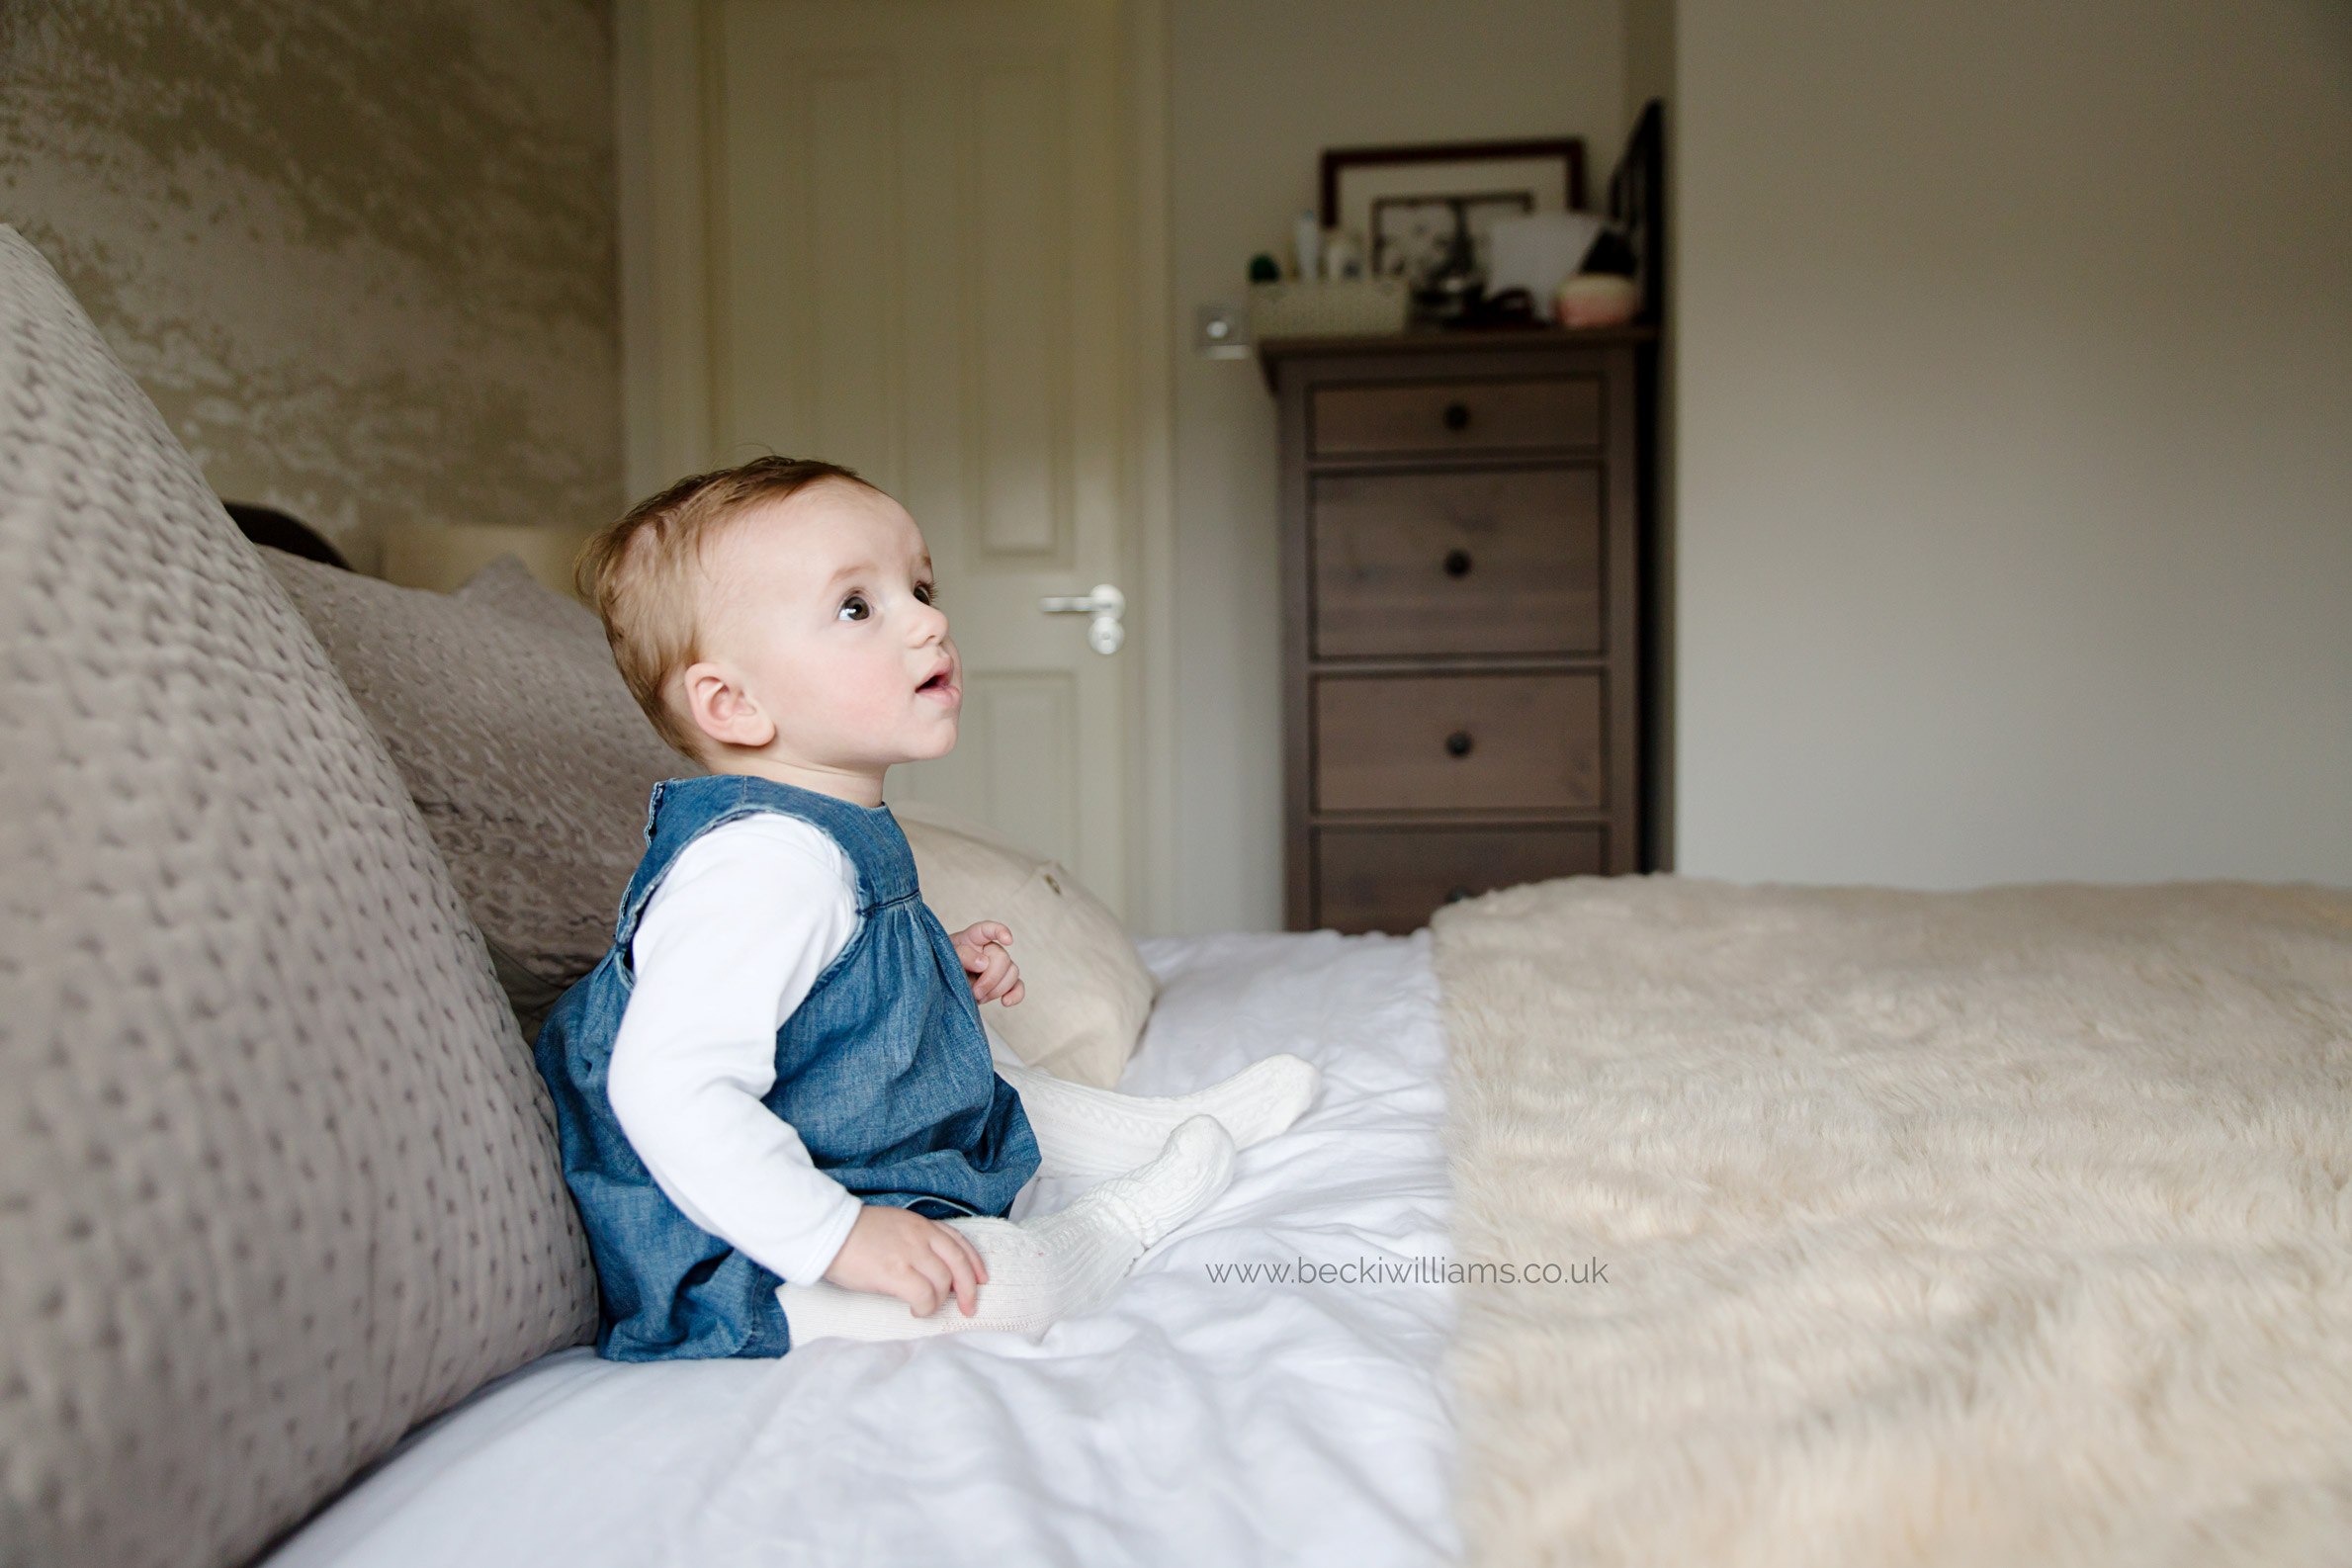 8 month old girl sits on bed for professional photography in hitchin